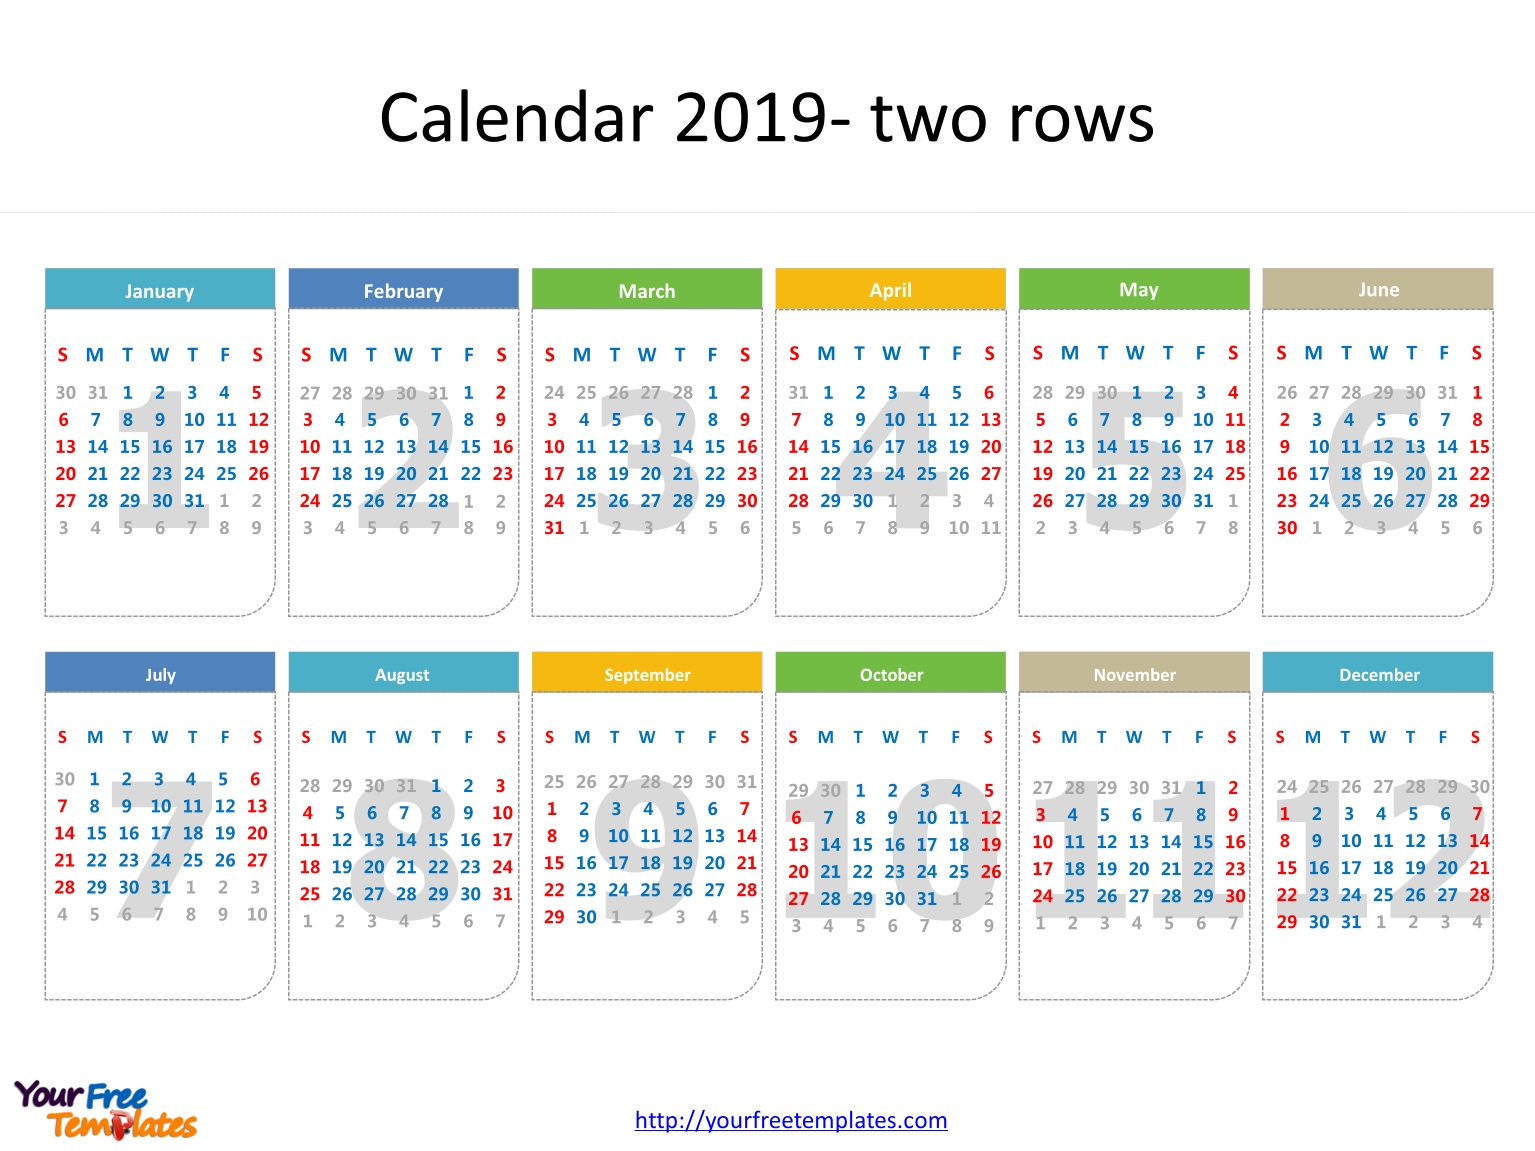 Printable Calendar 2019 Template - Free Powerpoint Templates intended for Fill In The Date Calendar Printable